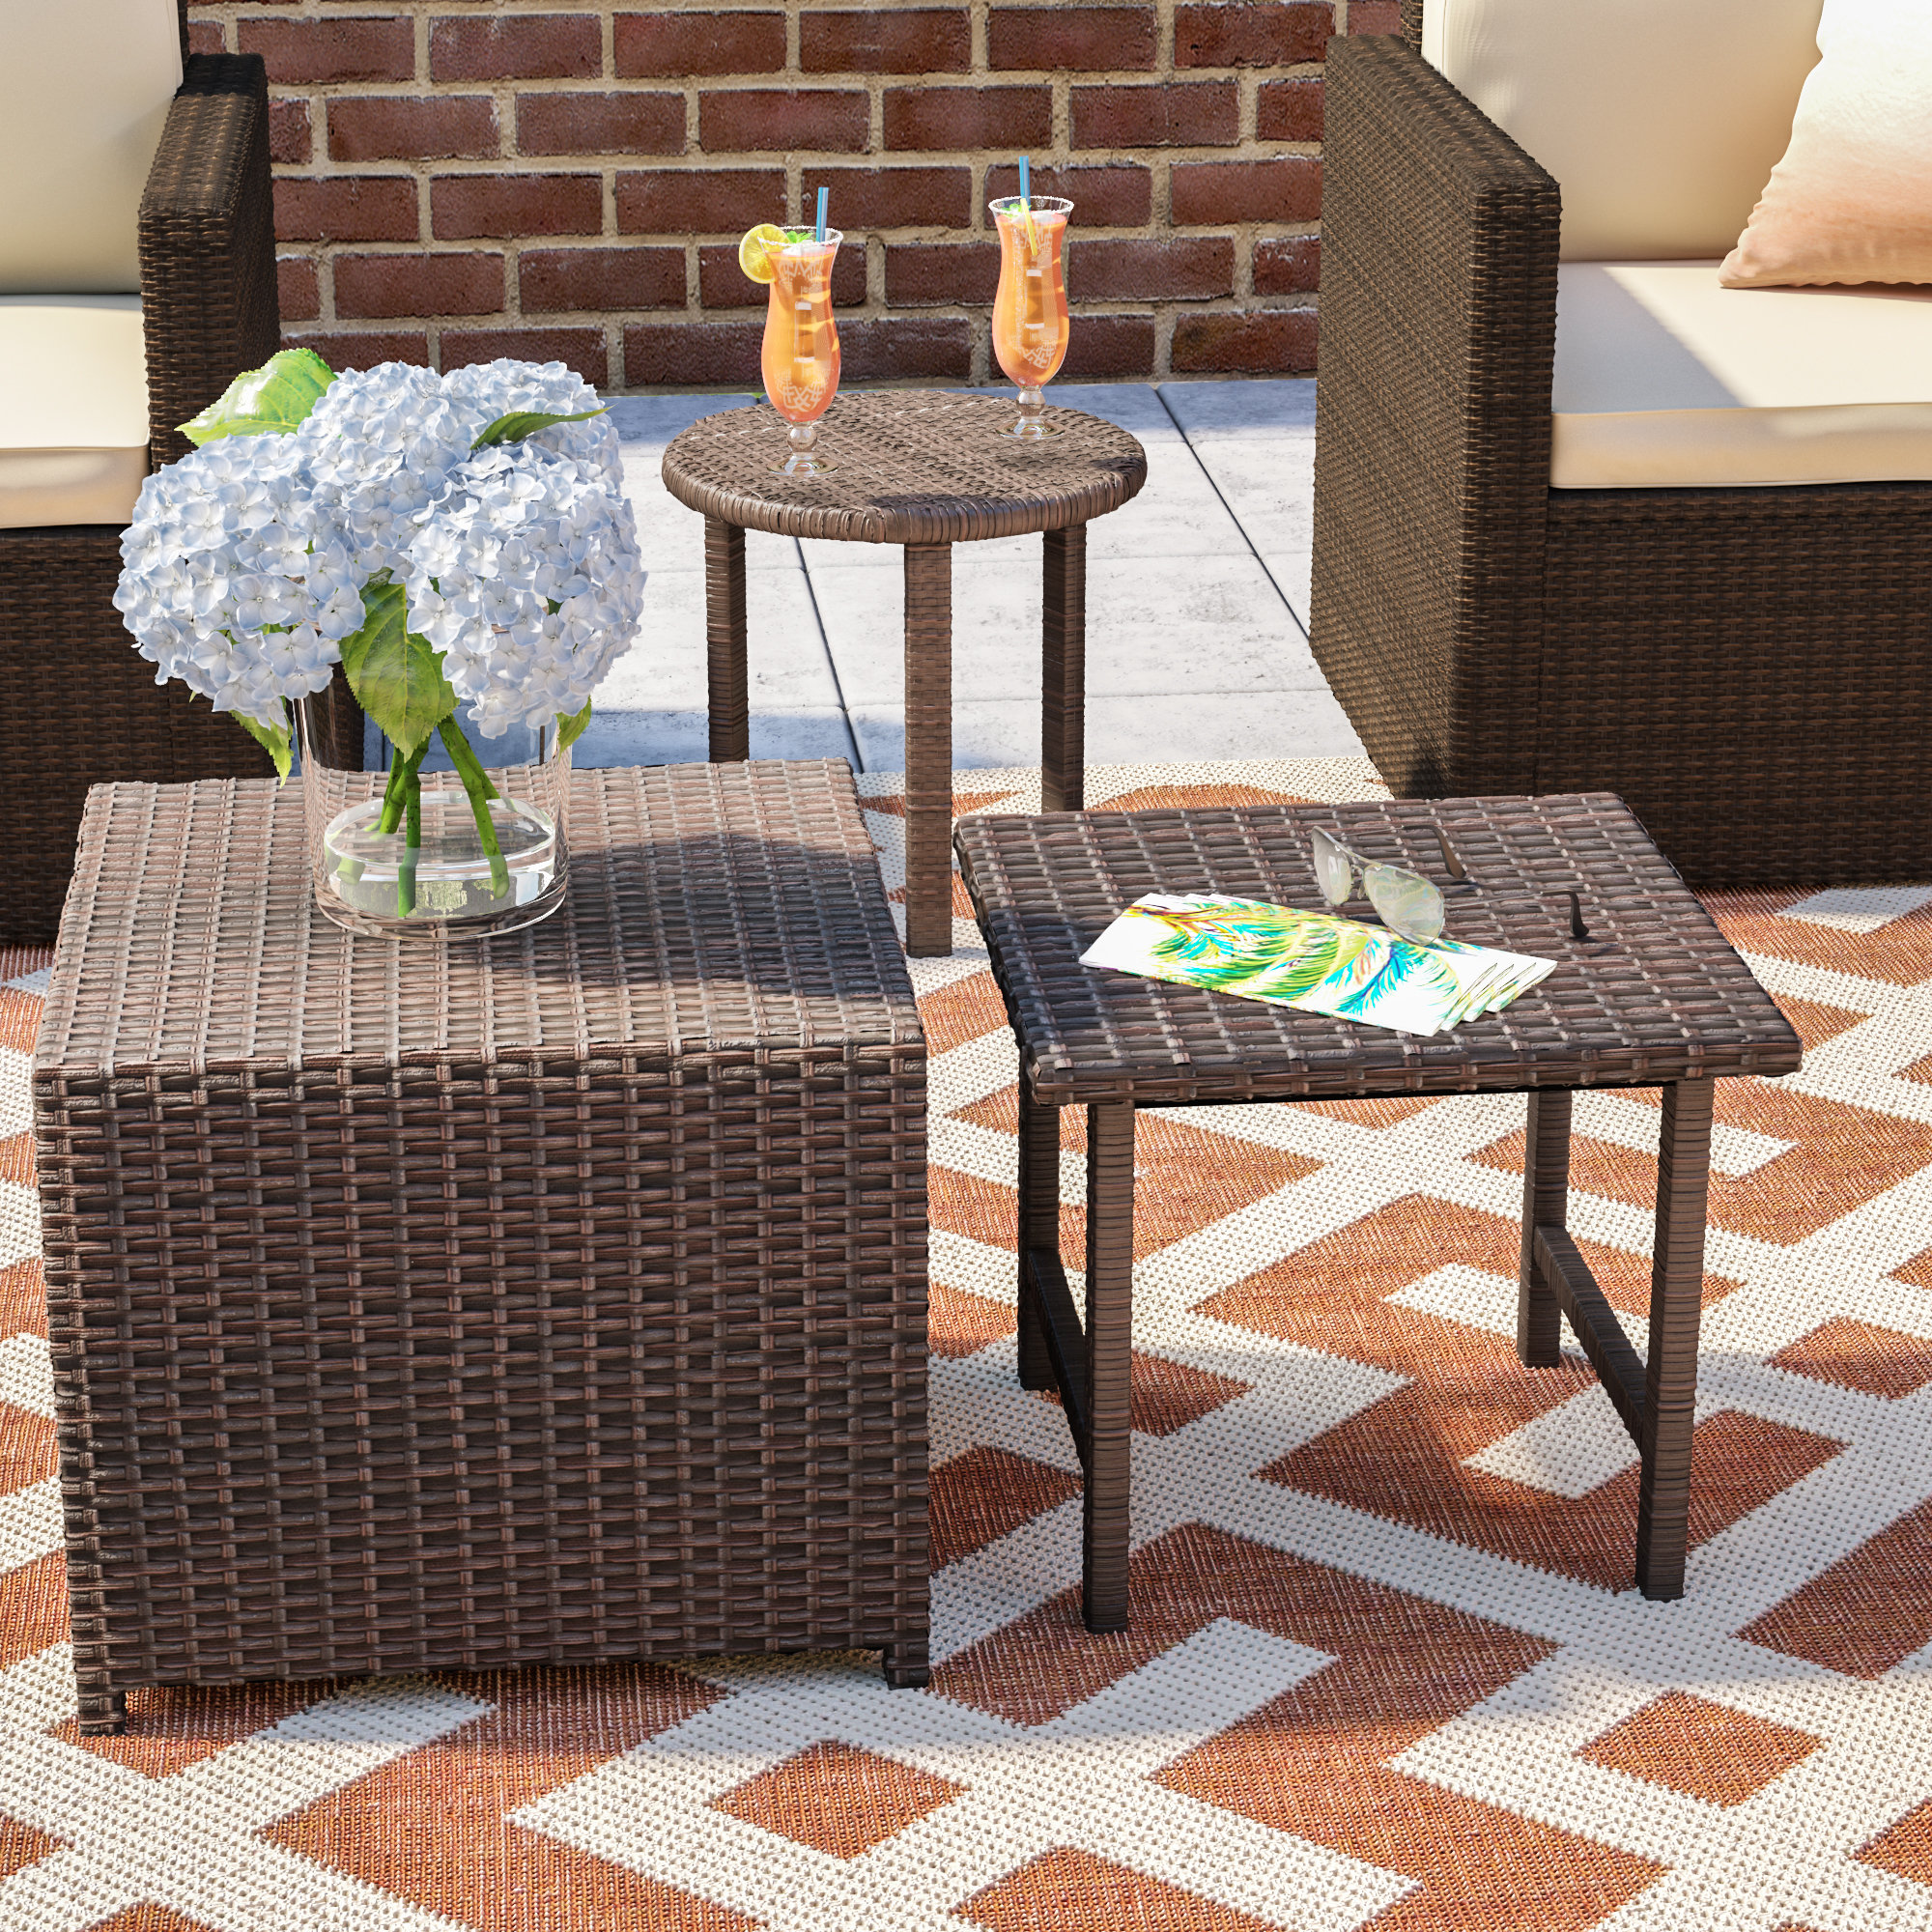 mercury row agamemnon piece wicker side table set reviews outdoor designer lighting brands wedding covers floor transitions for uneven floors dorm room furniture armchairs small